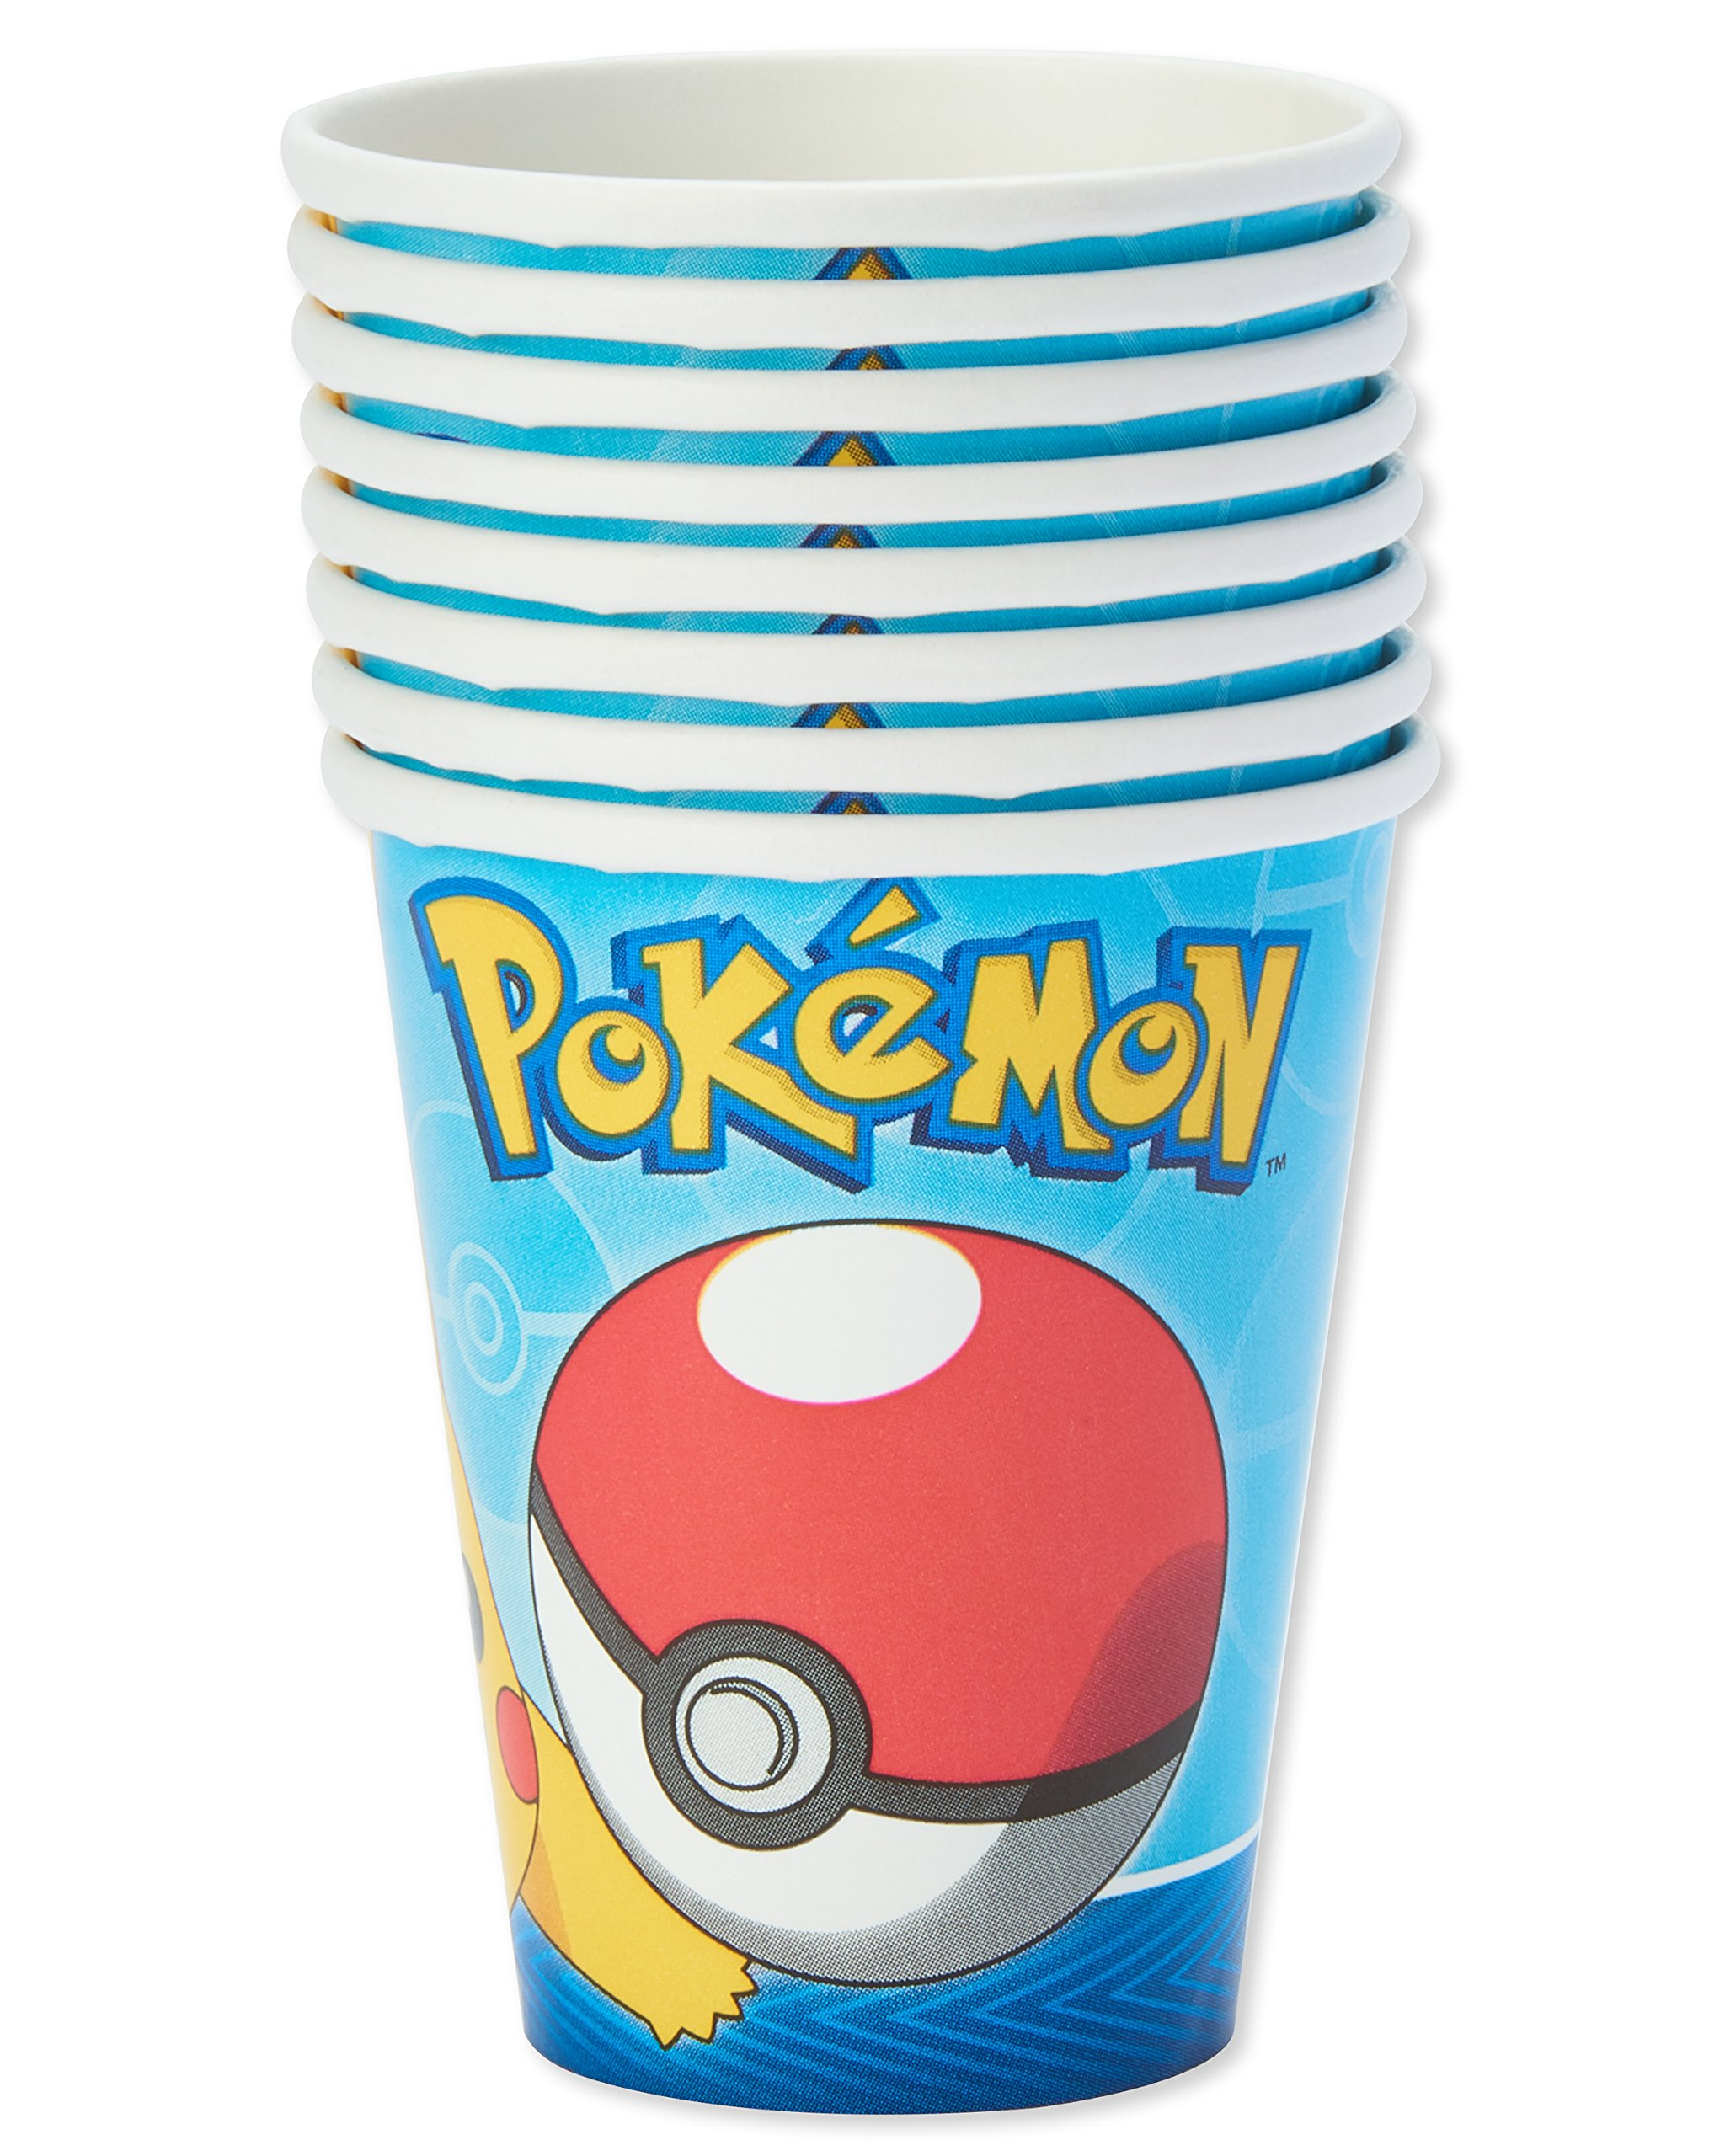 American Greetings Pokemon Paper Party Cups, 32-Count, Paper Cups by American Greetings (Image #3)